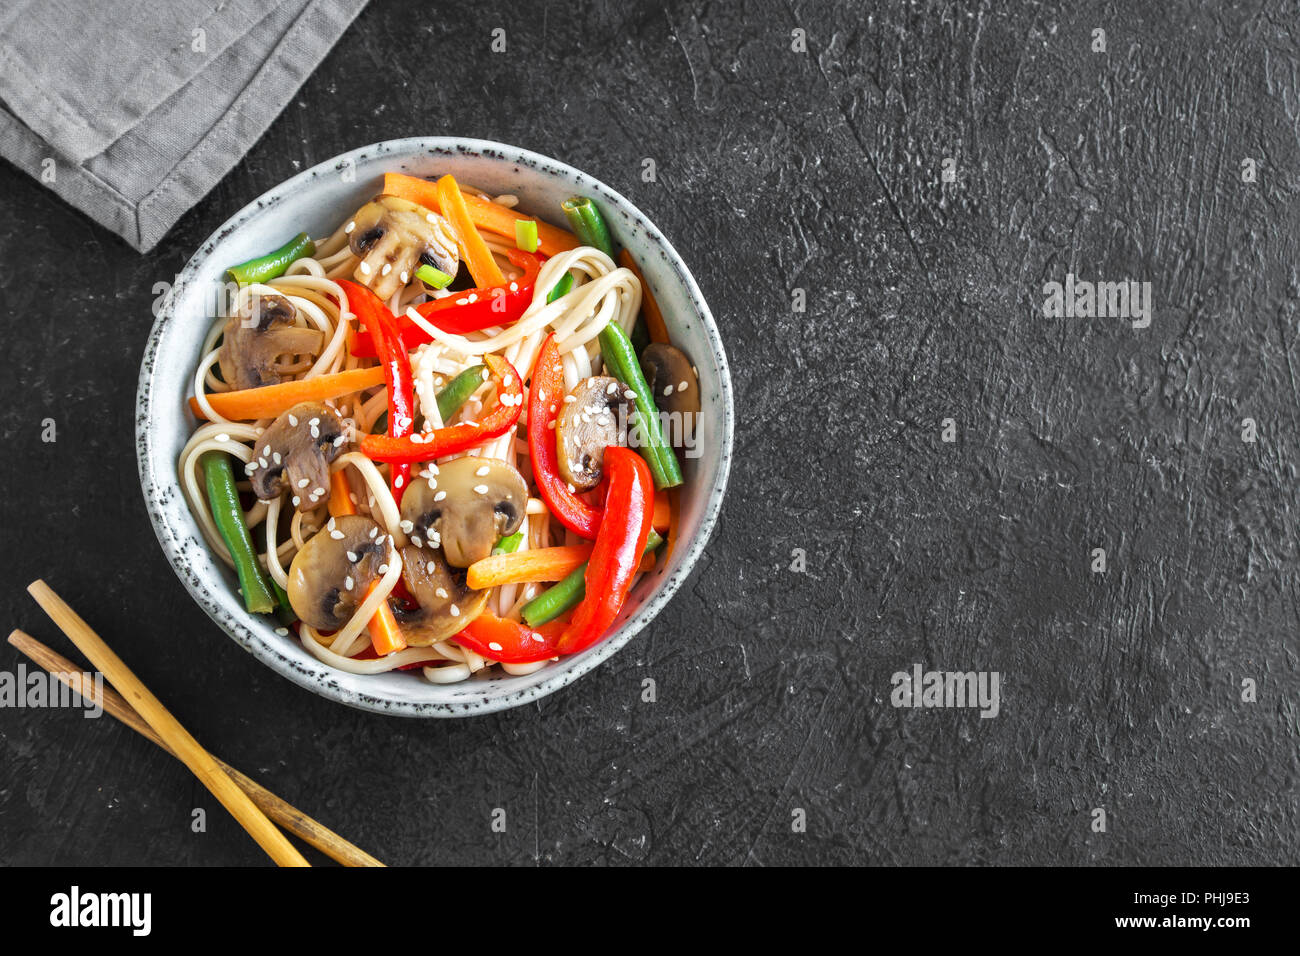 Stir fry with udon noodles, mushrooms and vegetables in bowl. Asian vegan vegetarian food, meal, stir fry over black background, copy space. Stock Photo